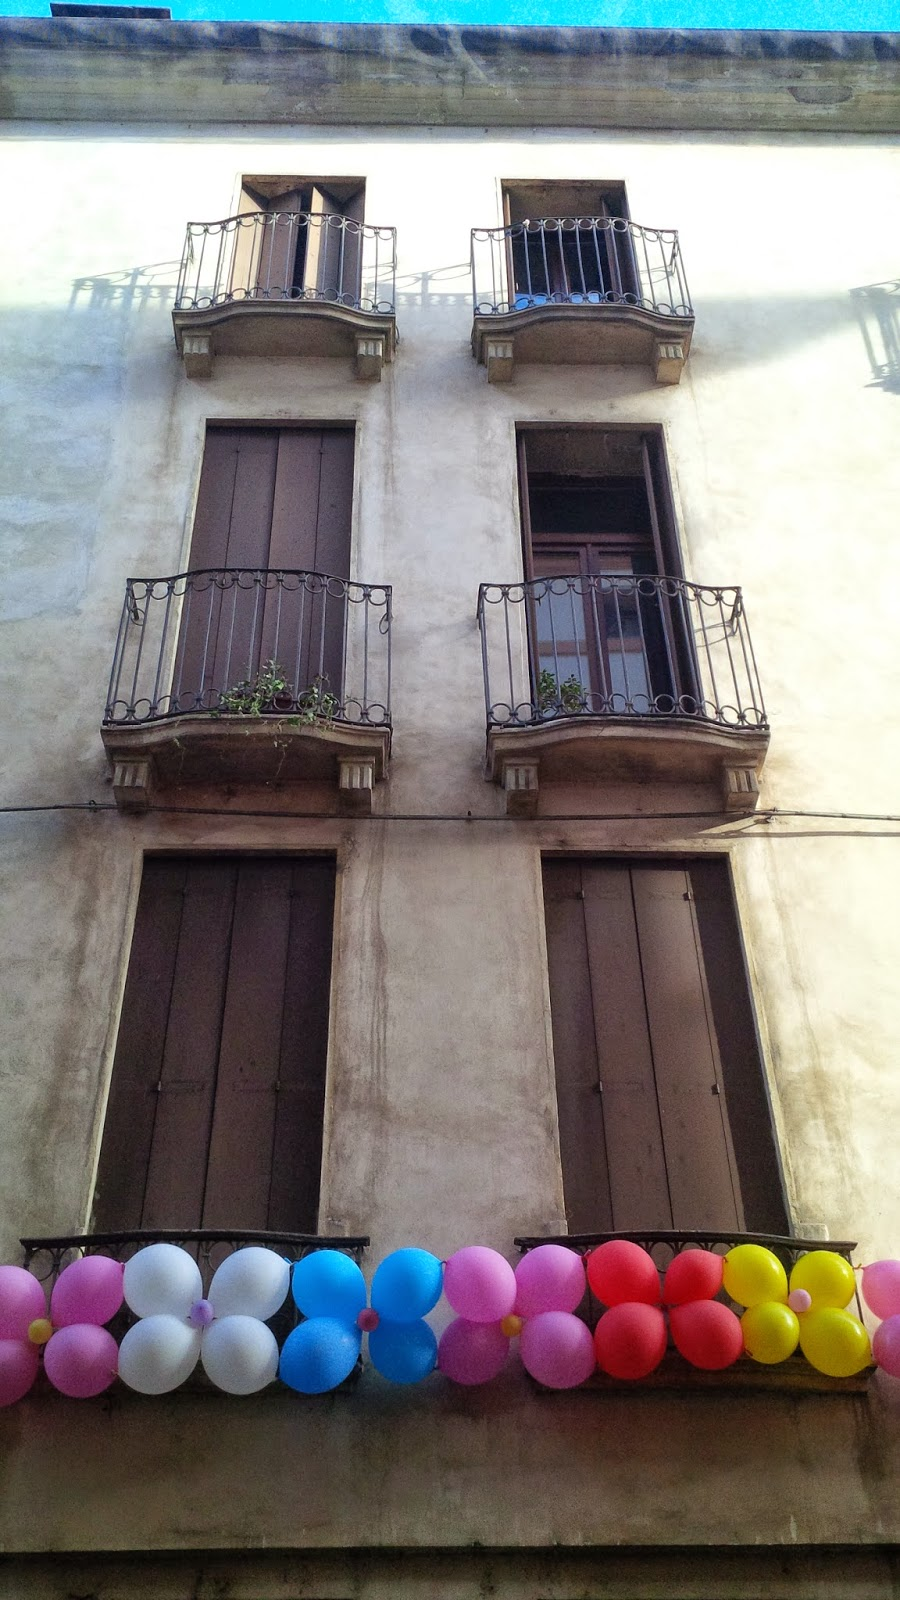 A house adorned with balloons in Vicenza